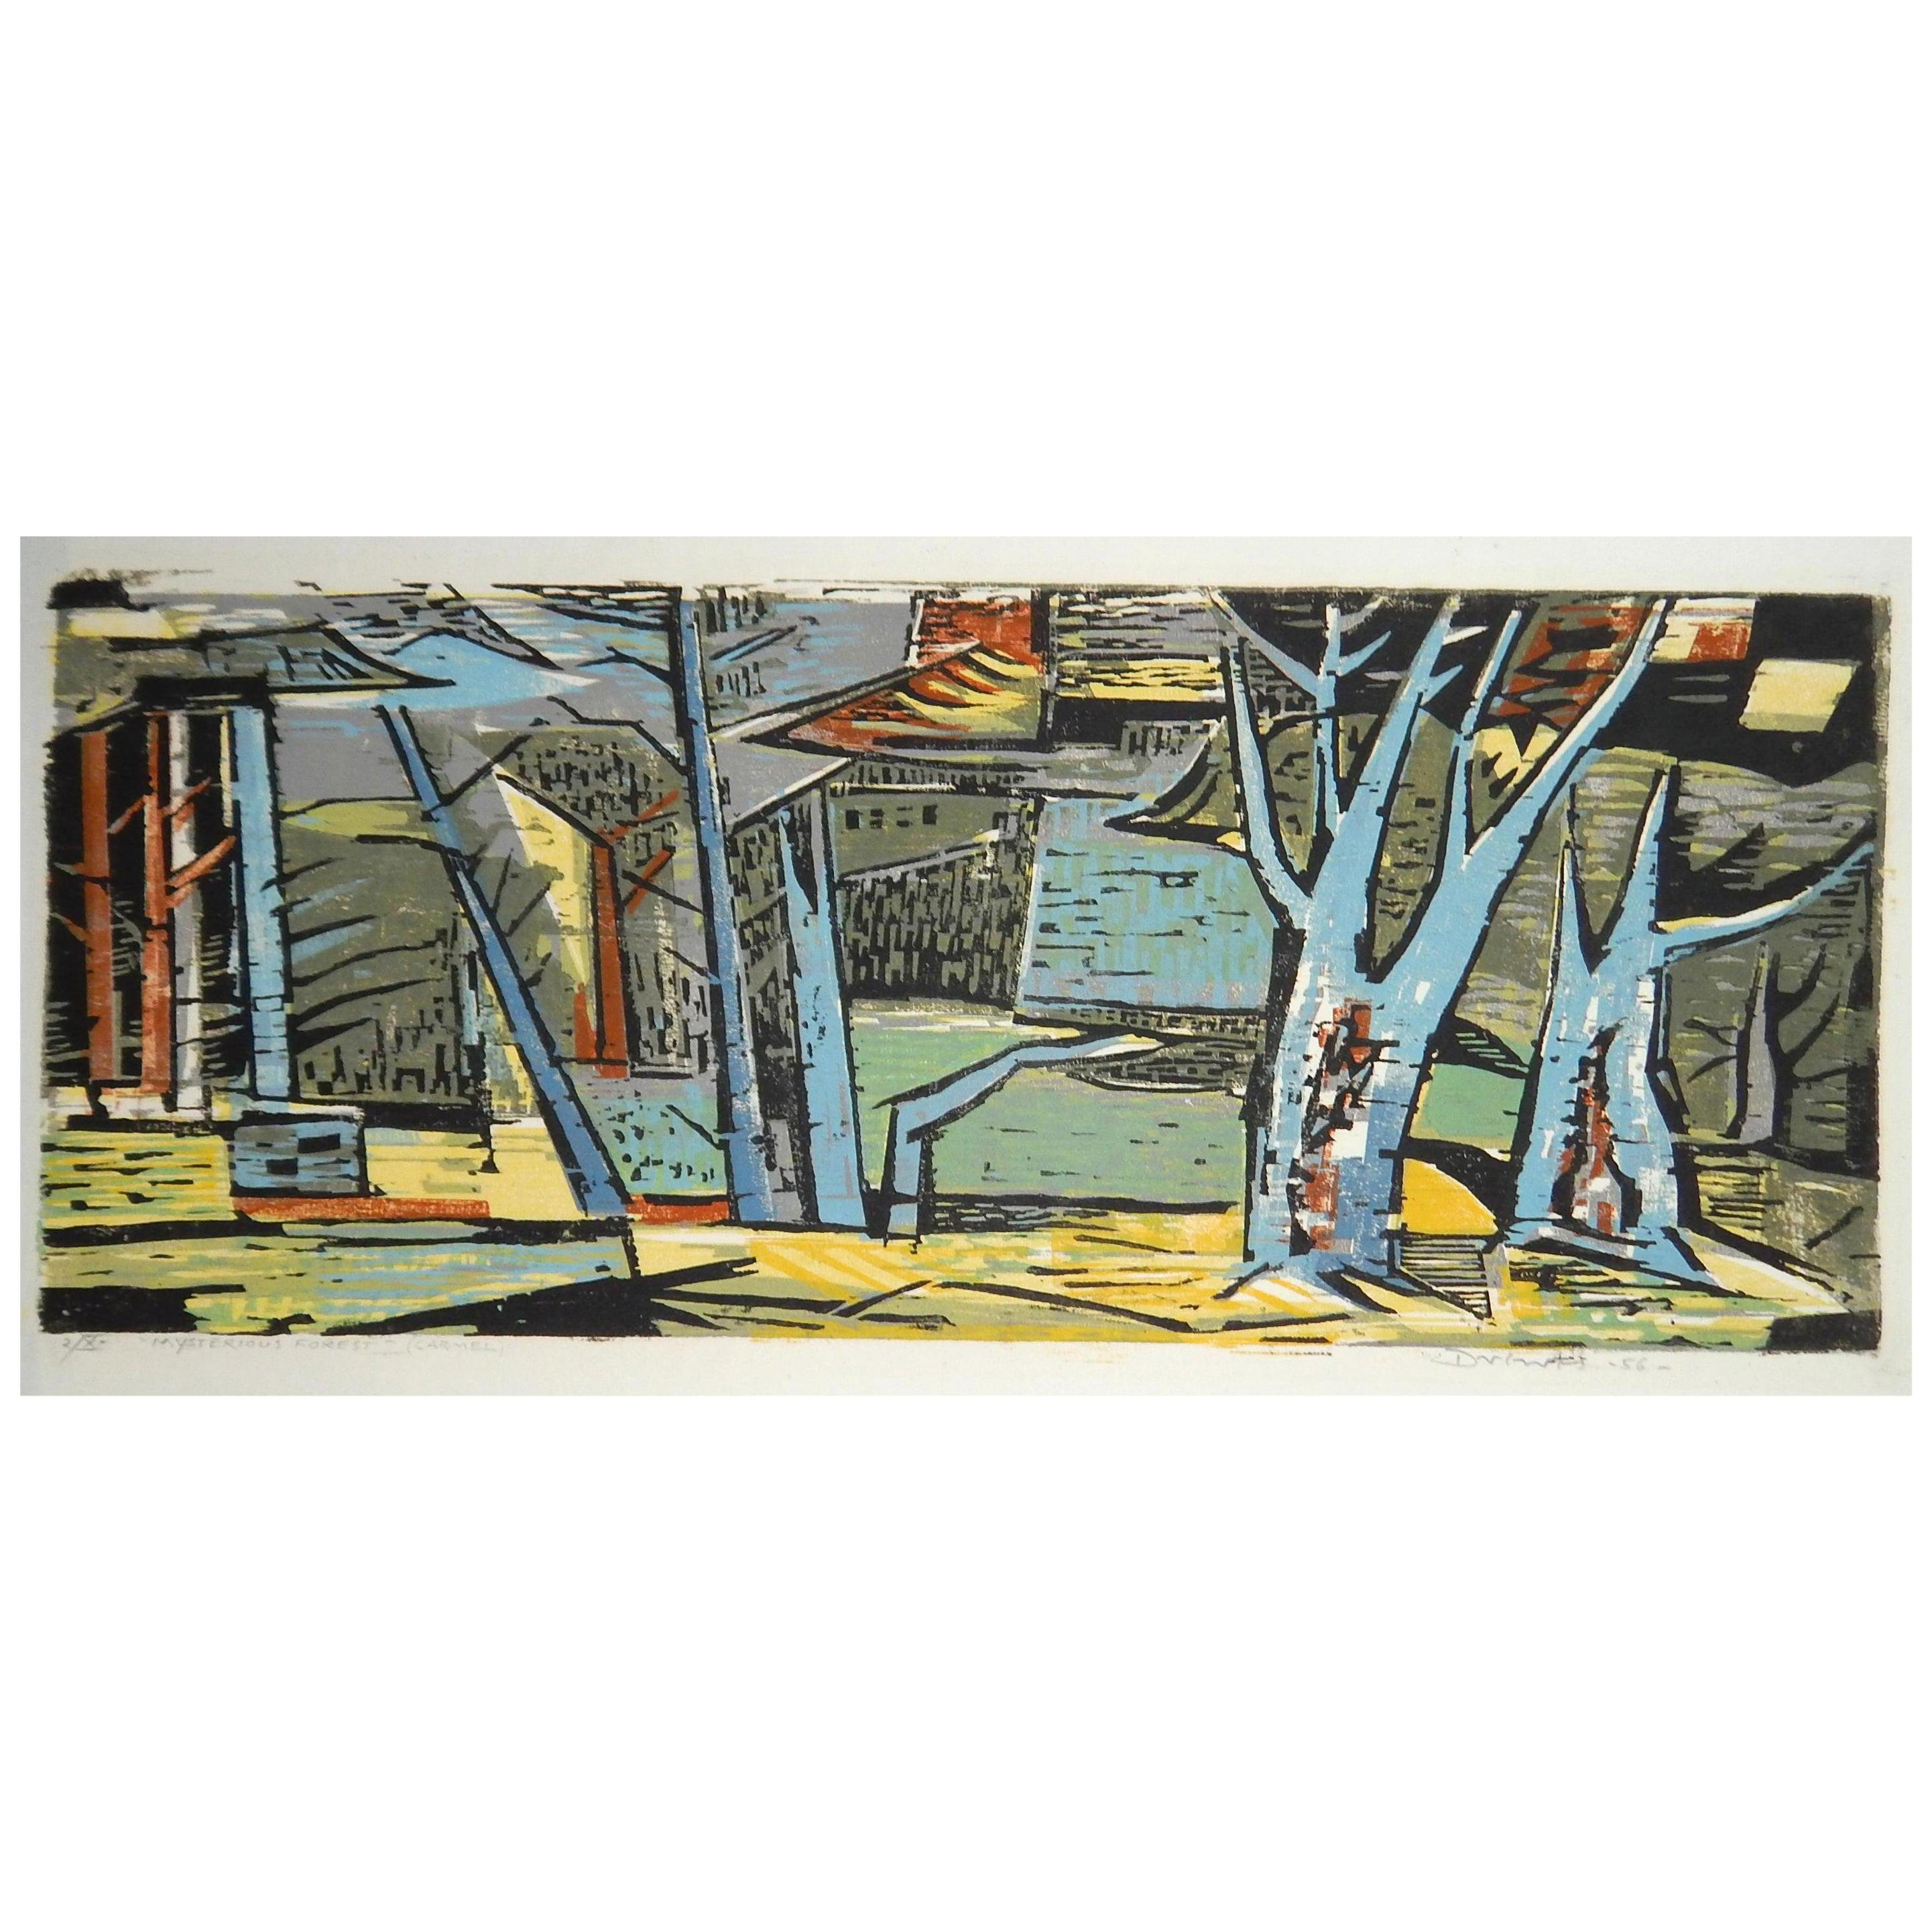 Werner Drewes Bauhaus Artist Color Woodblock, 1956, Mysterious Forest